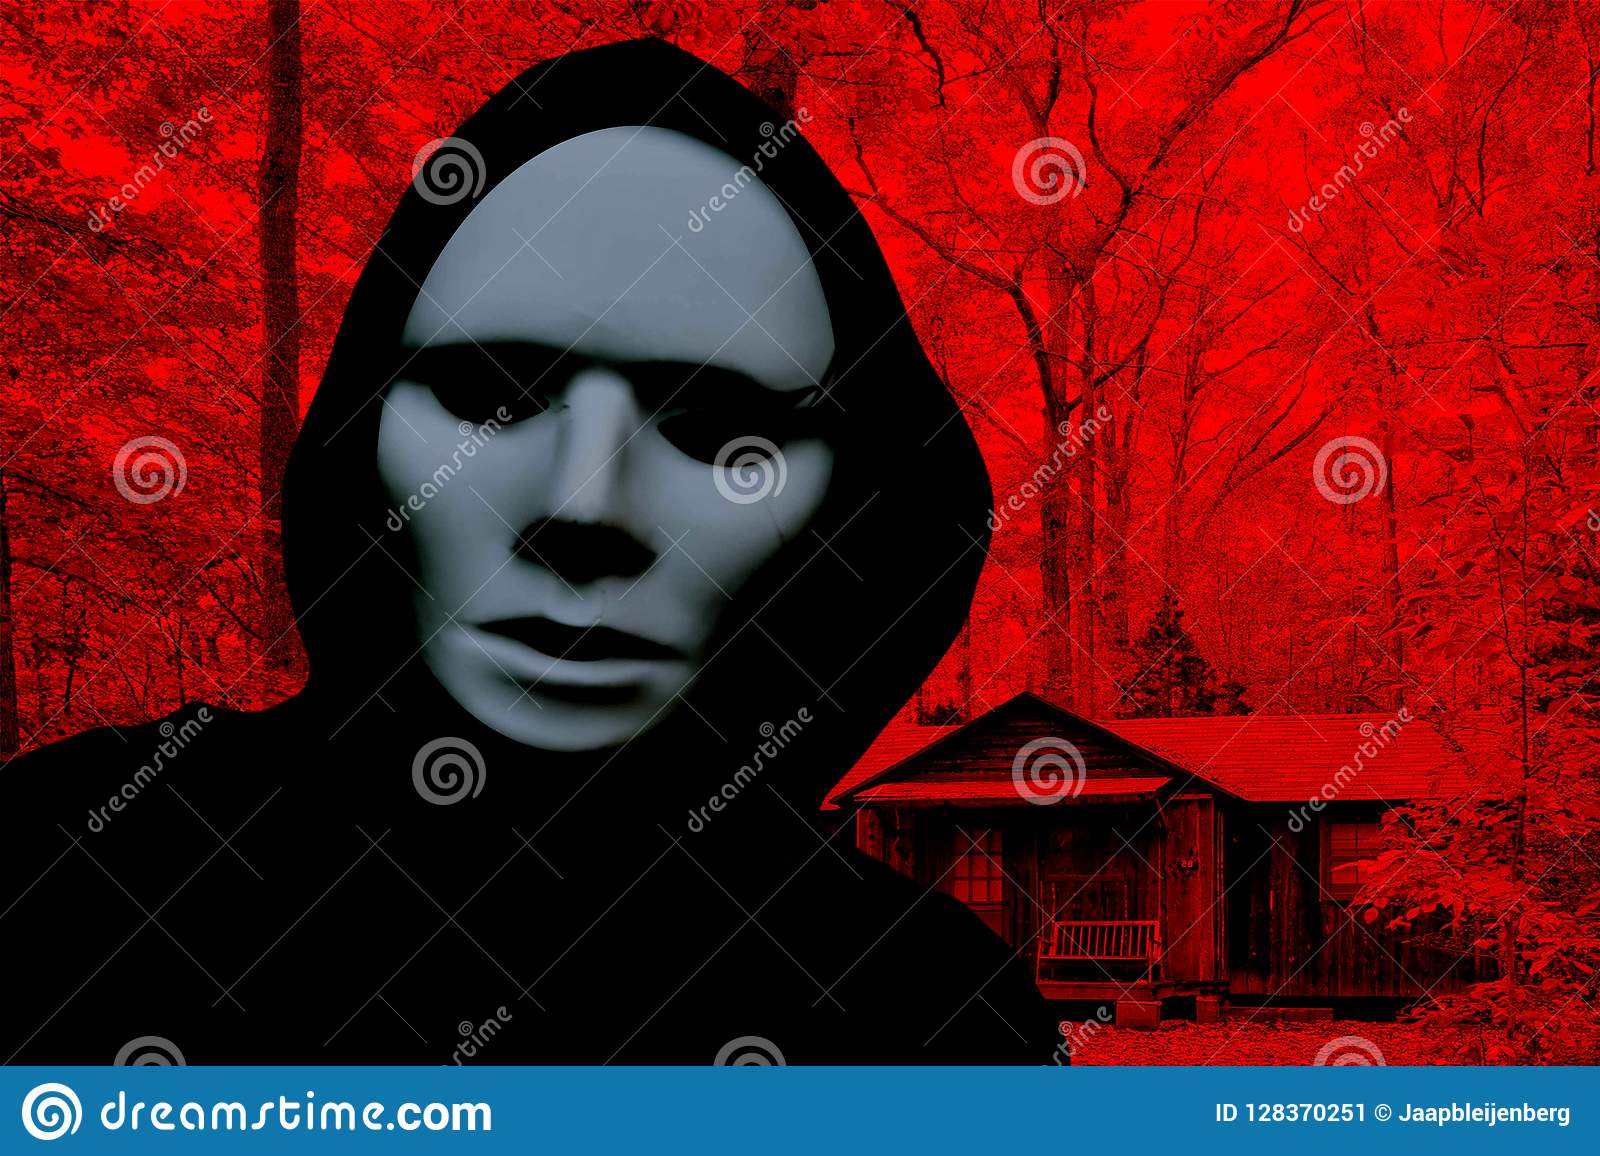 Halloween creepy masked person wearing a hood and standing in front of a cabin in a horror forest